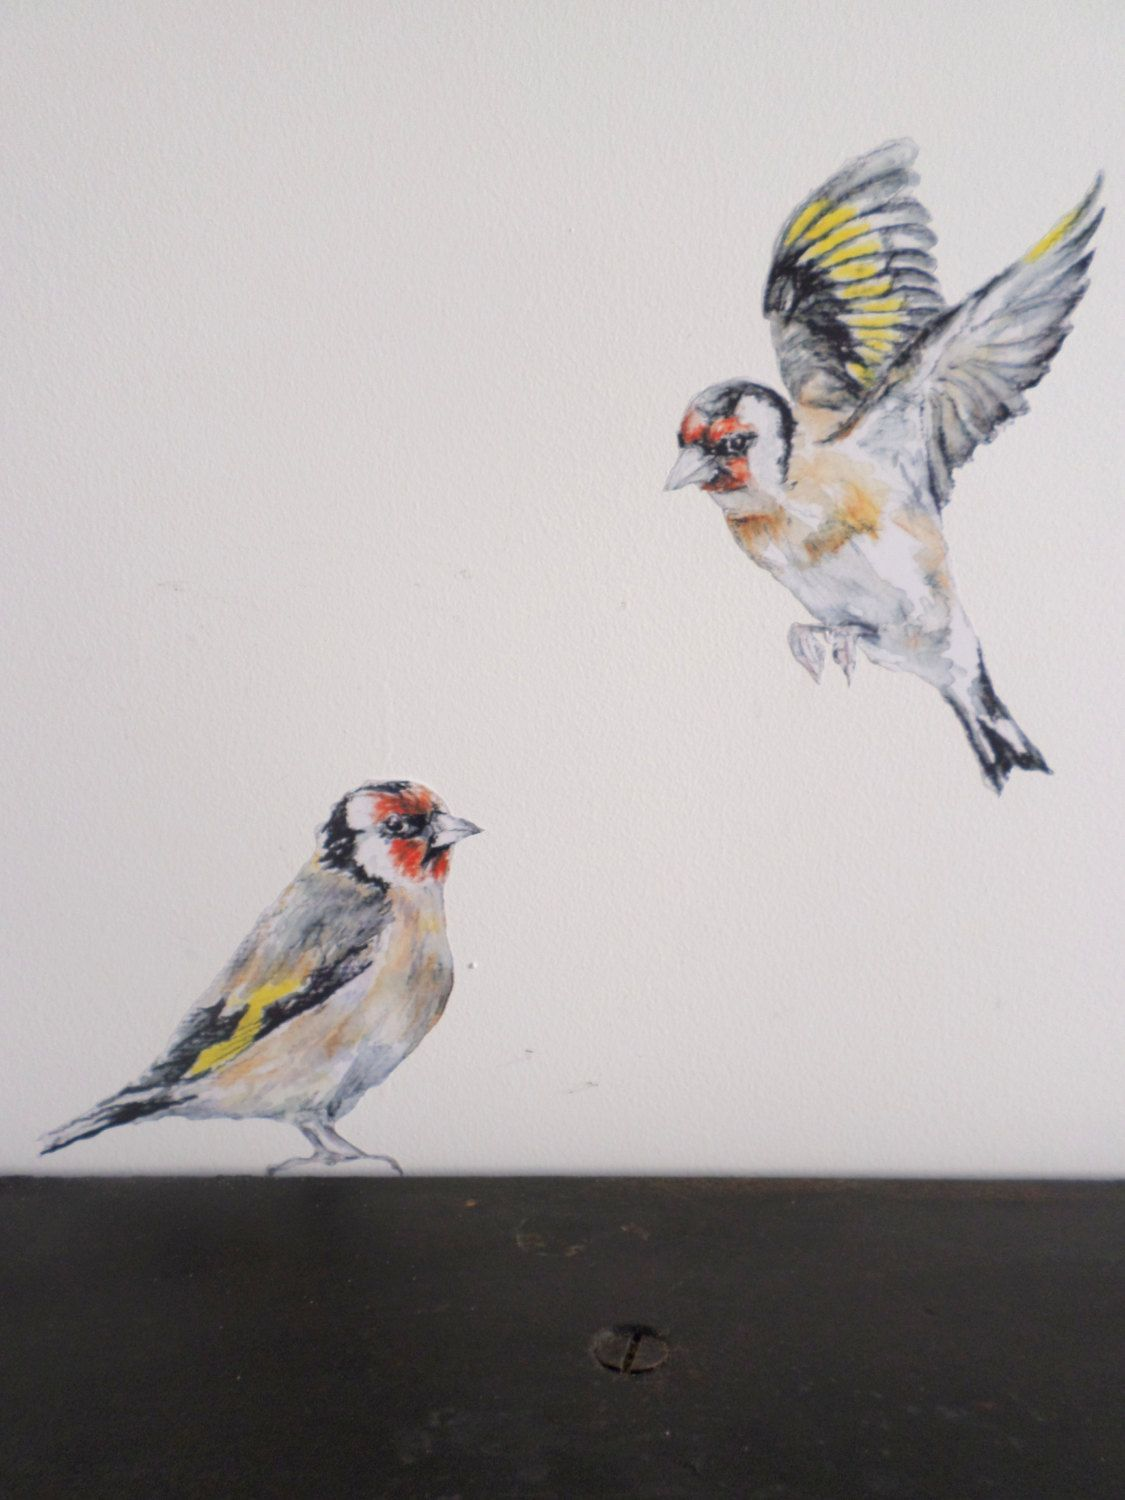 Wall Sticker Goldfinches Pair Bird Decor Bird Gifts Watercolor